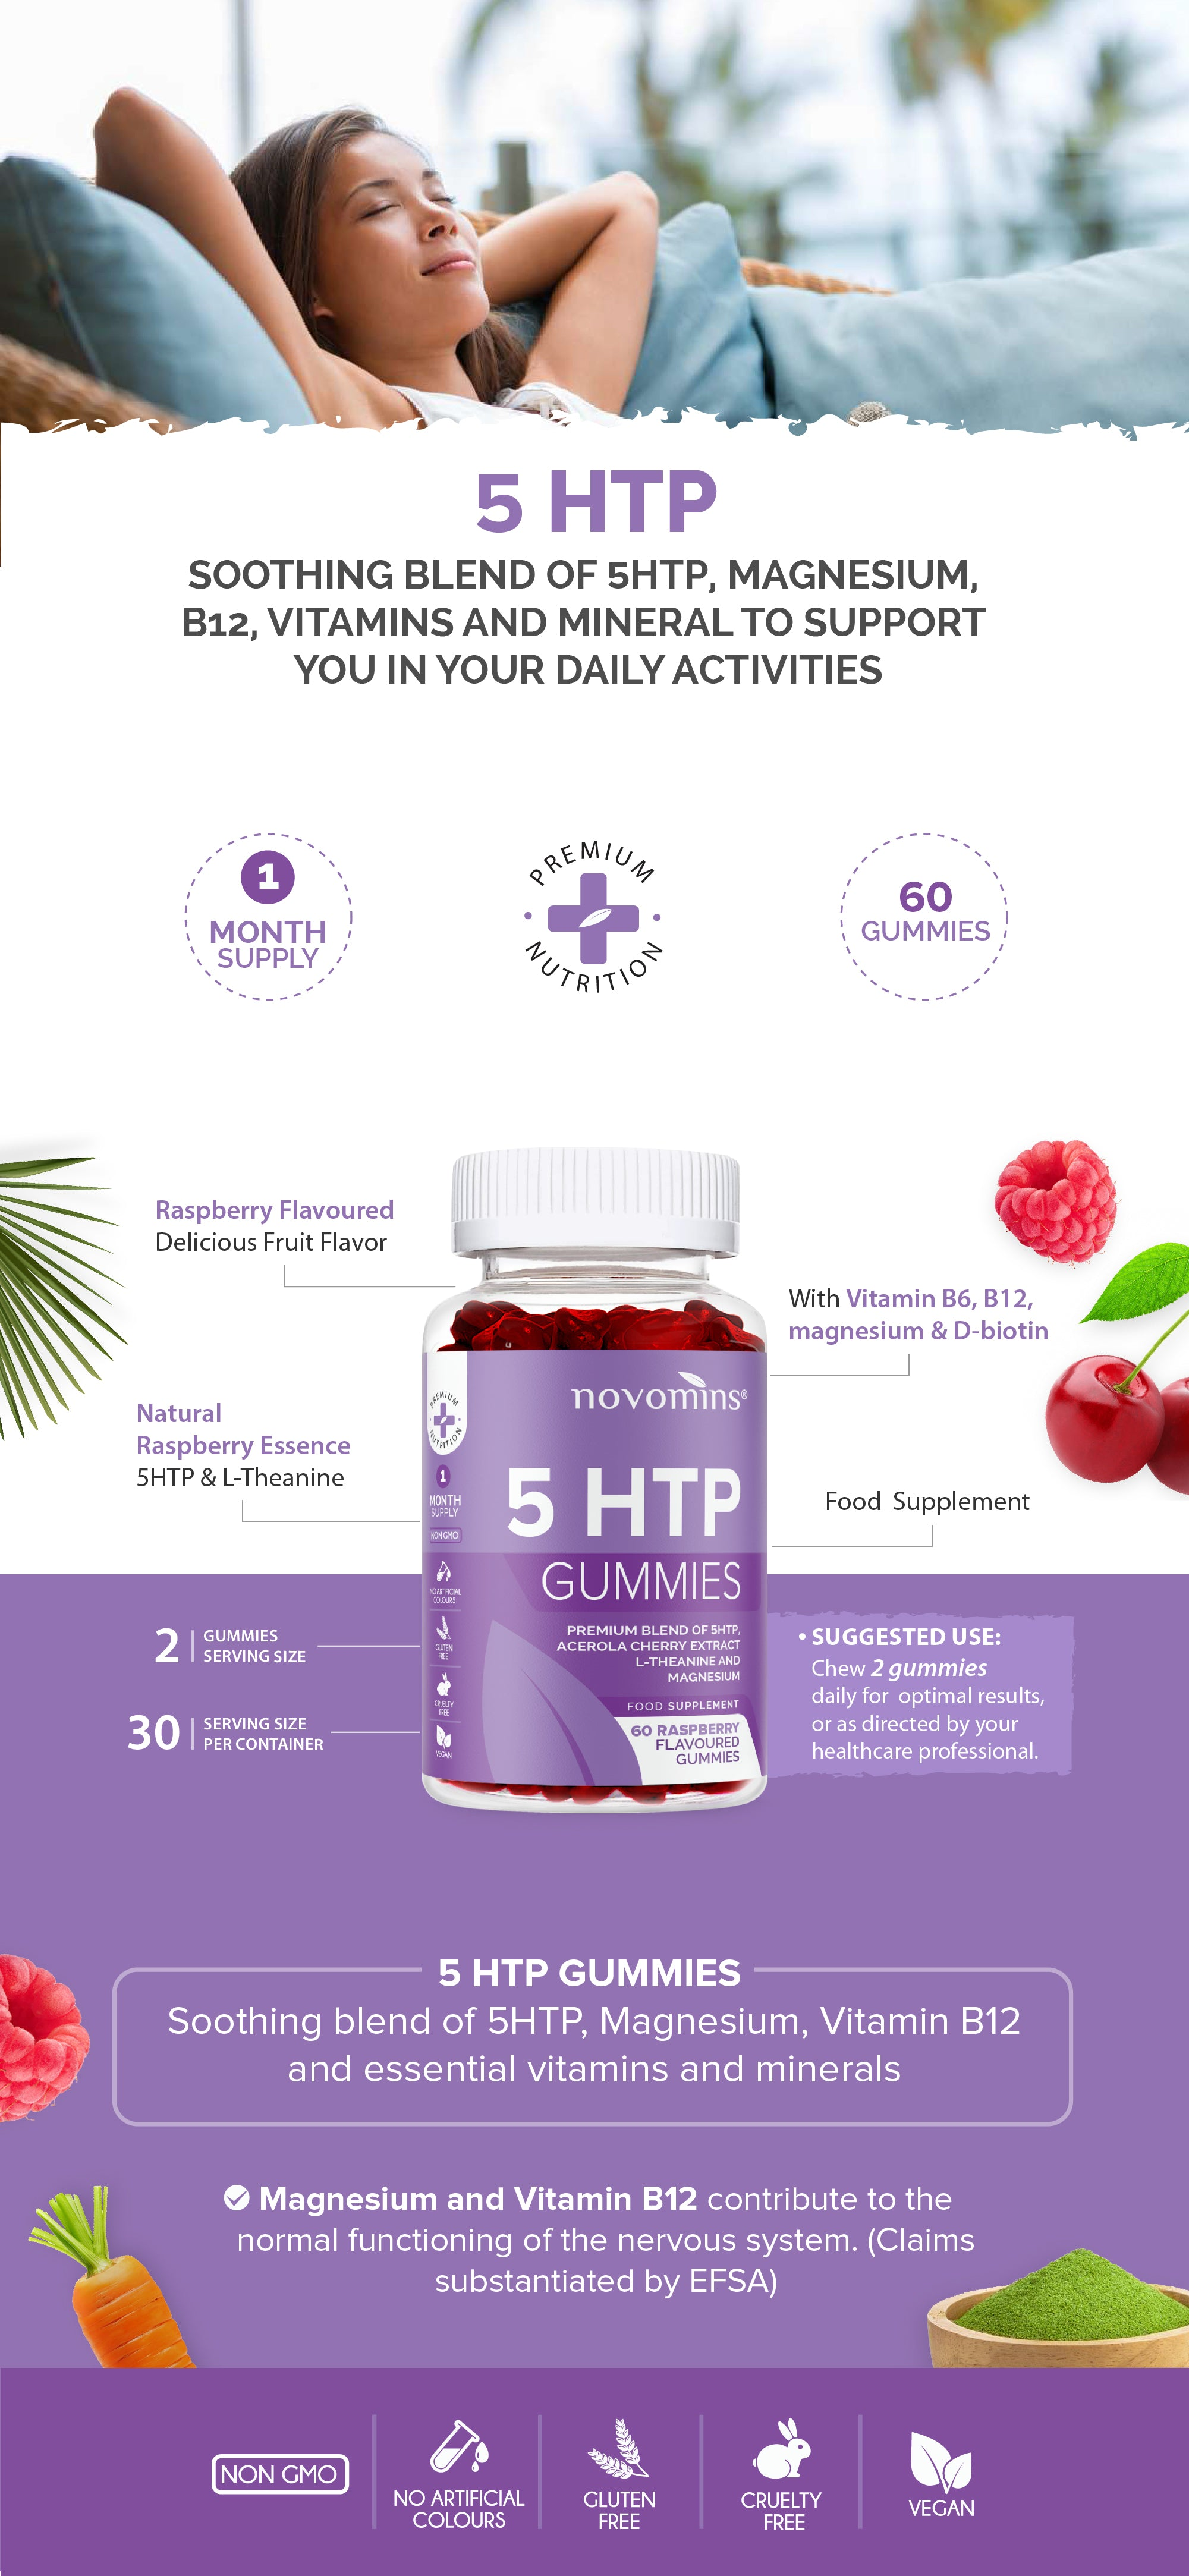 5htp gummies, melatonin gummies, sleeping gummies, 5 htp, melatonin gummies for sleeping, Nutritional Information, 5HTP, Glycine, L-Theanine, Acerola Cherry Extract, Vitamin B6, Biotin. Magnesium, Vitamin B12, Gluten Free, Non-GMO, Vegan, Delicious, Nutritious, No artificial colours, food supplement, support a reduction in tiredness and fatigue, contributes to normal neurological function, contributes to normal physiological function